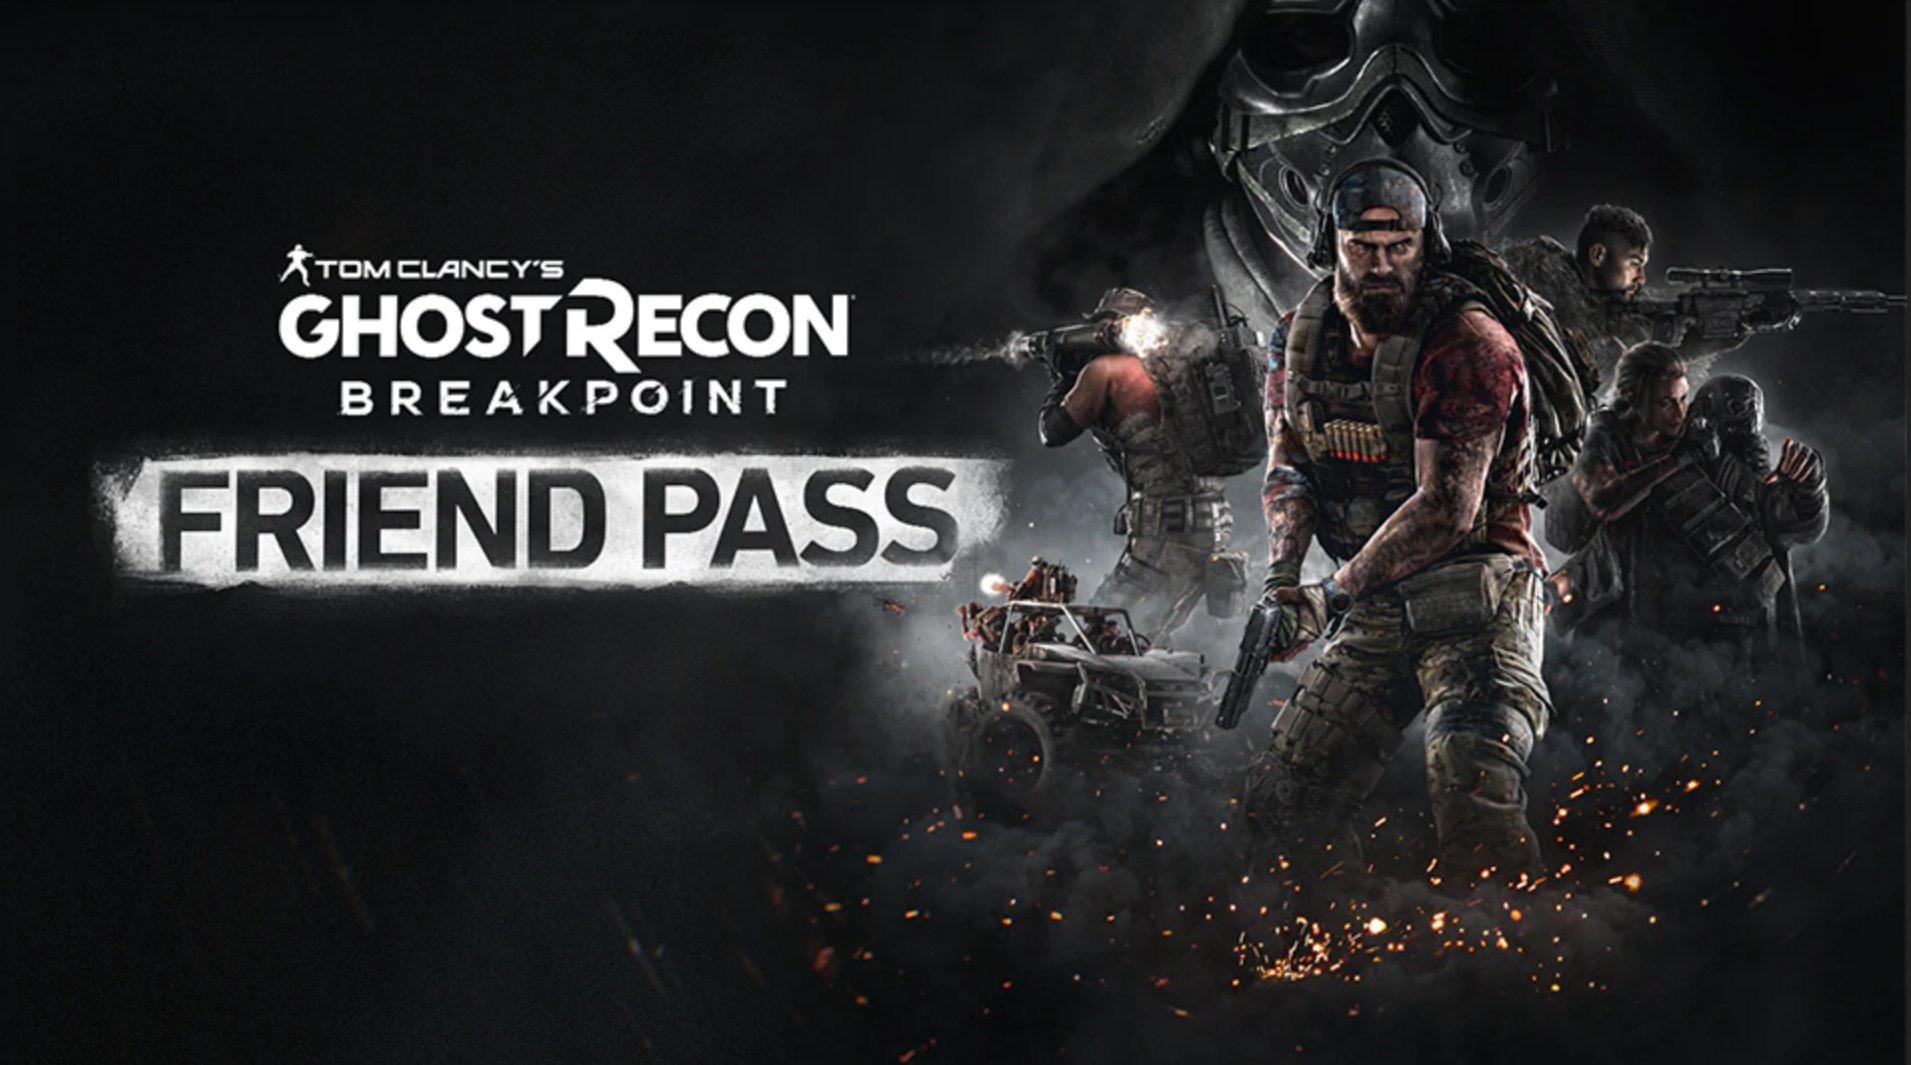 Ghost Recon Breakpoint FriendPass